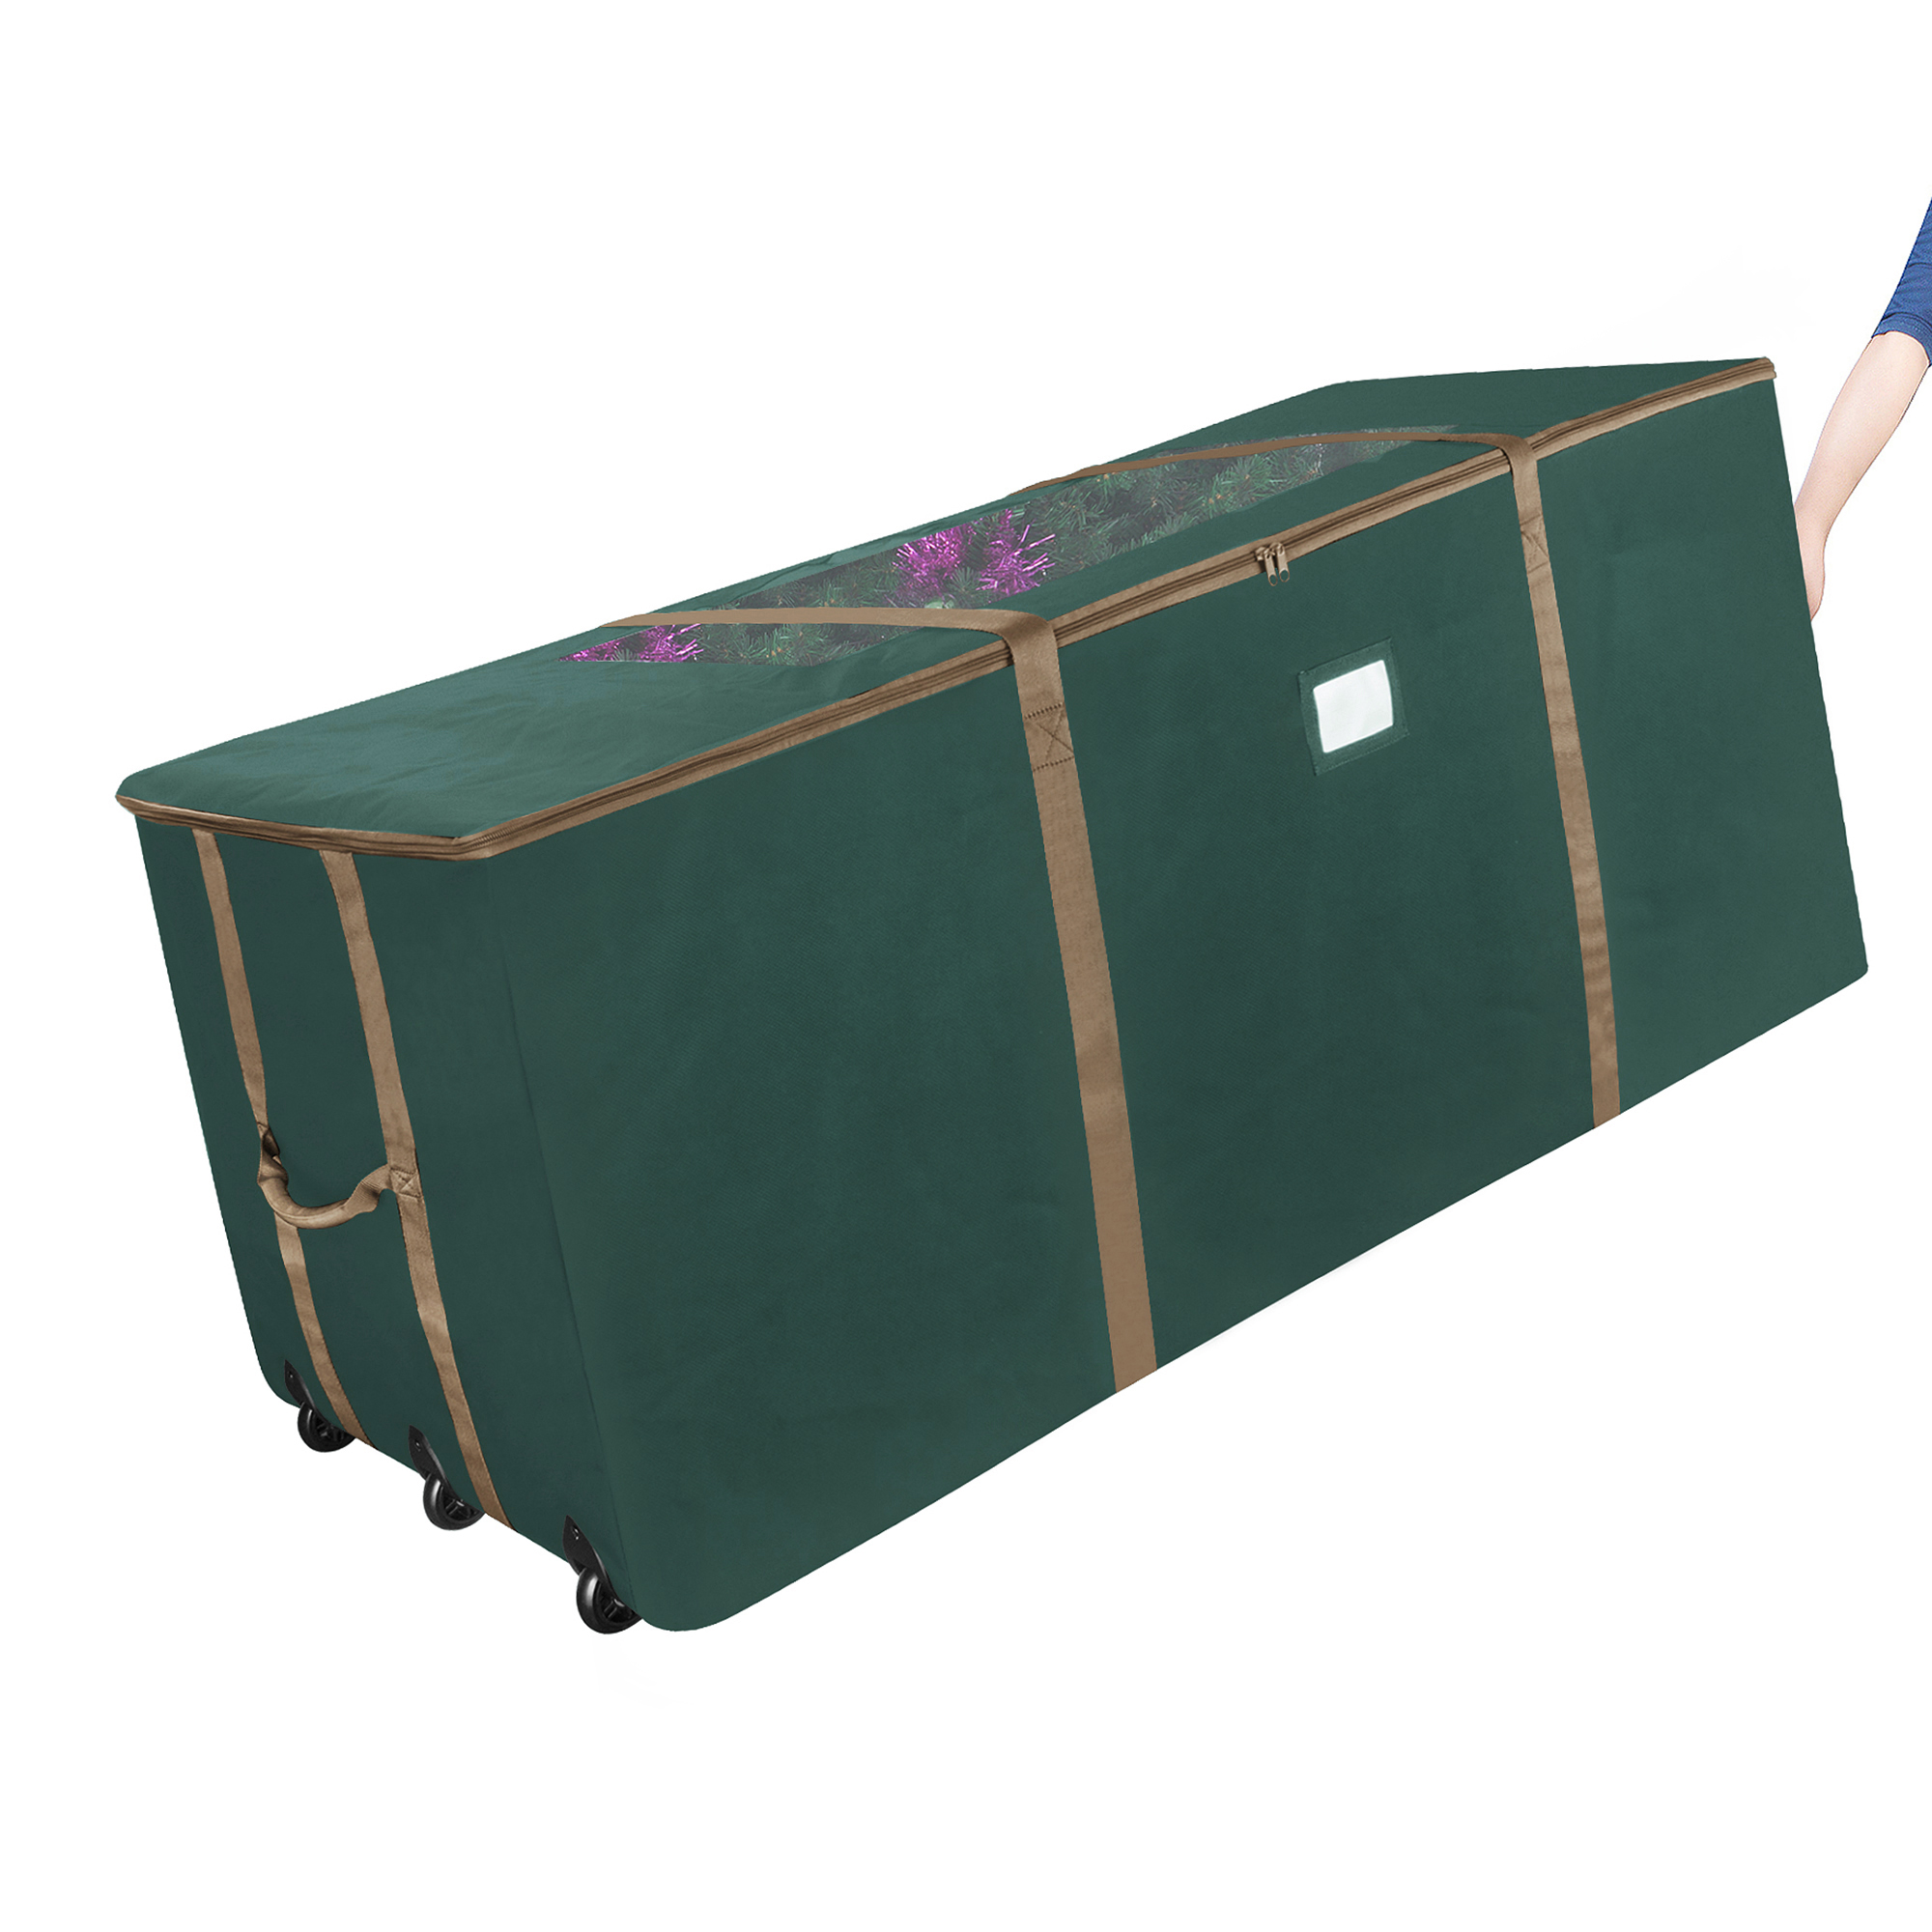 Elf Stor Green Rolling Christmas Tree Storage Duffel Bag w/Window for 9 Ft Tree